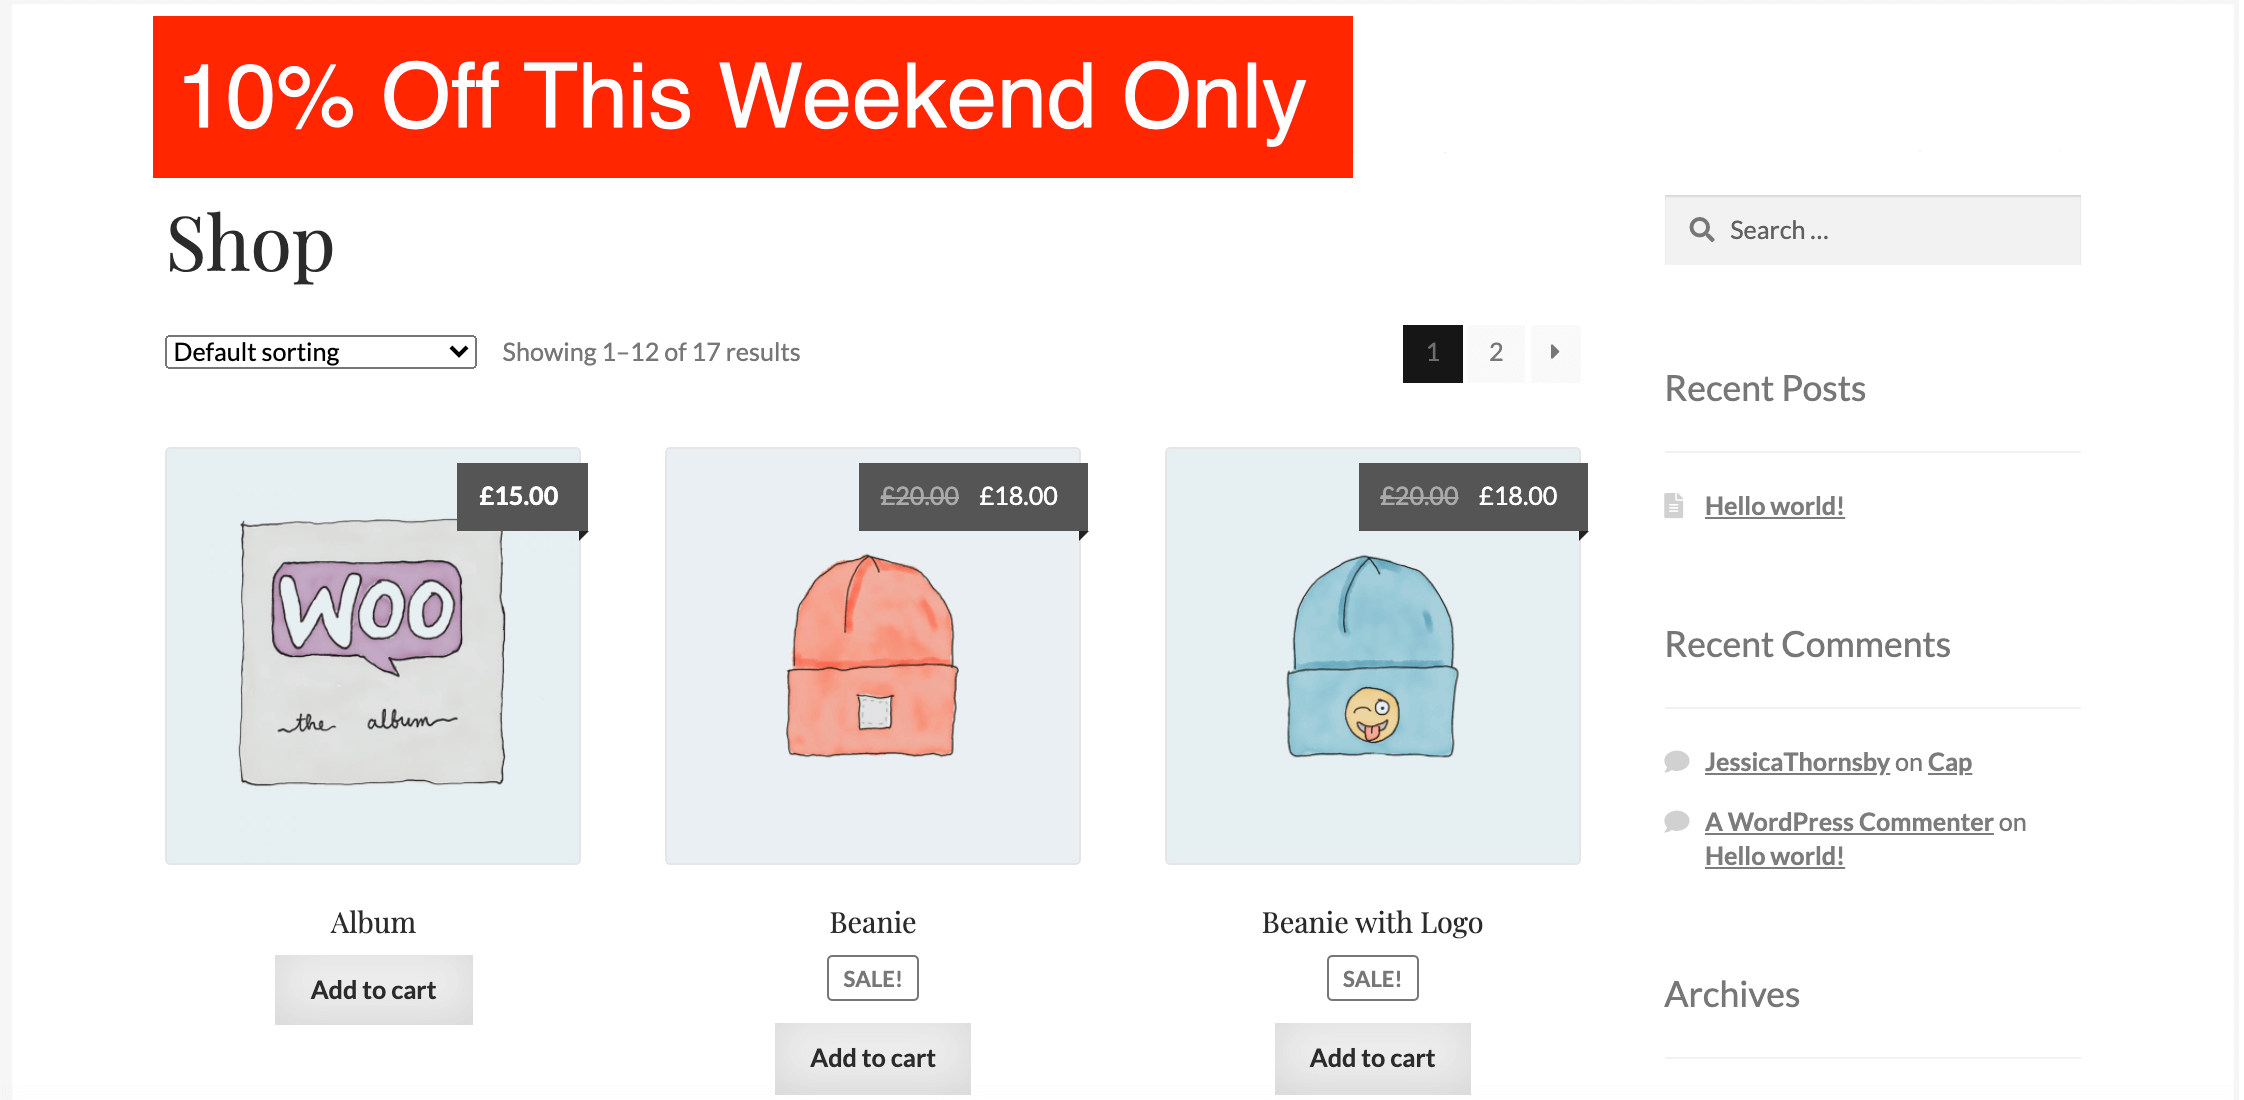 A WooCommerce site with a sales banner created by Beaver Builder.